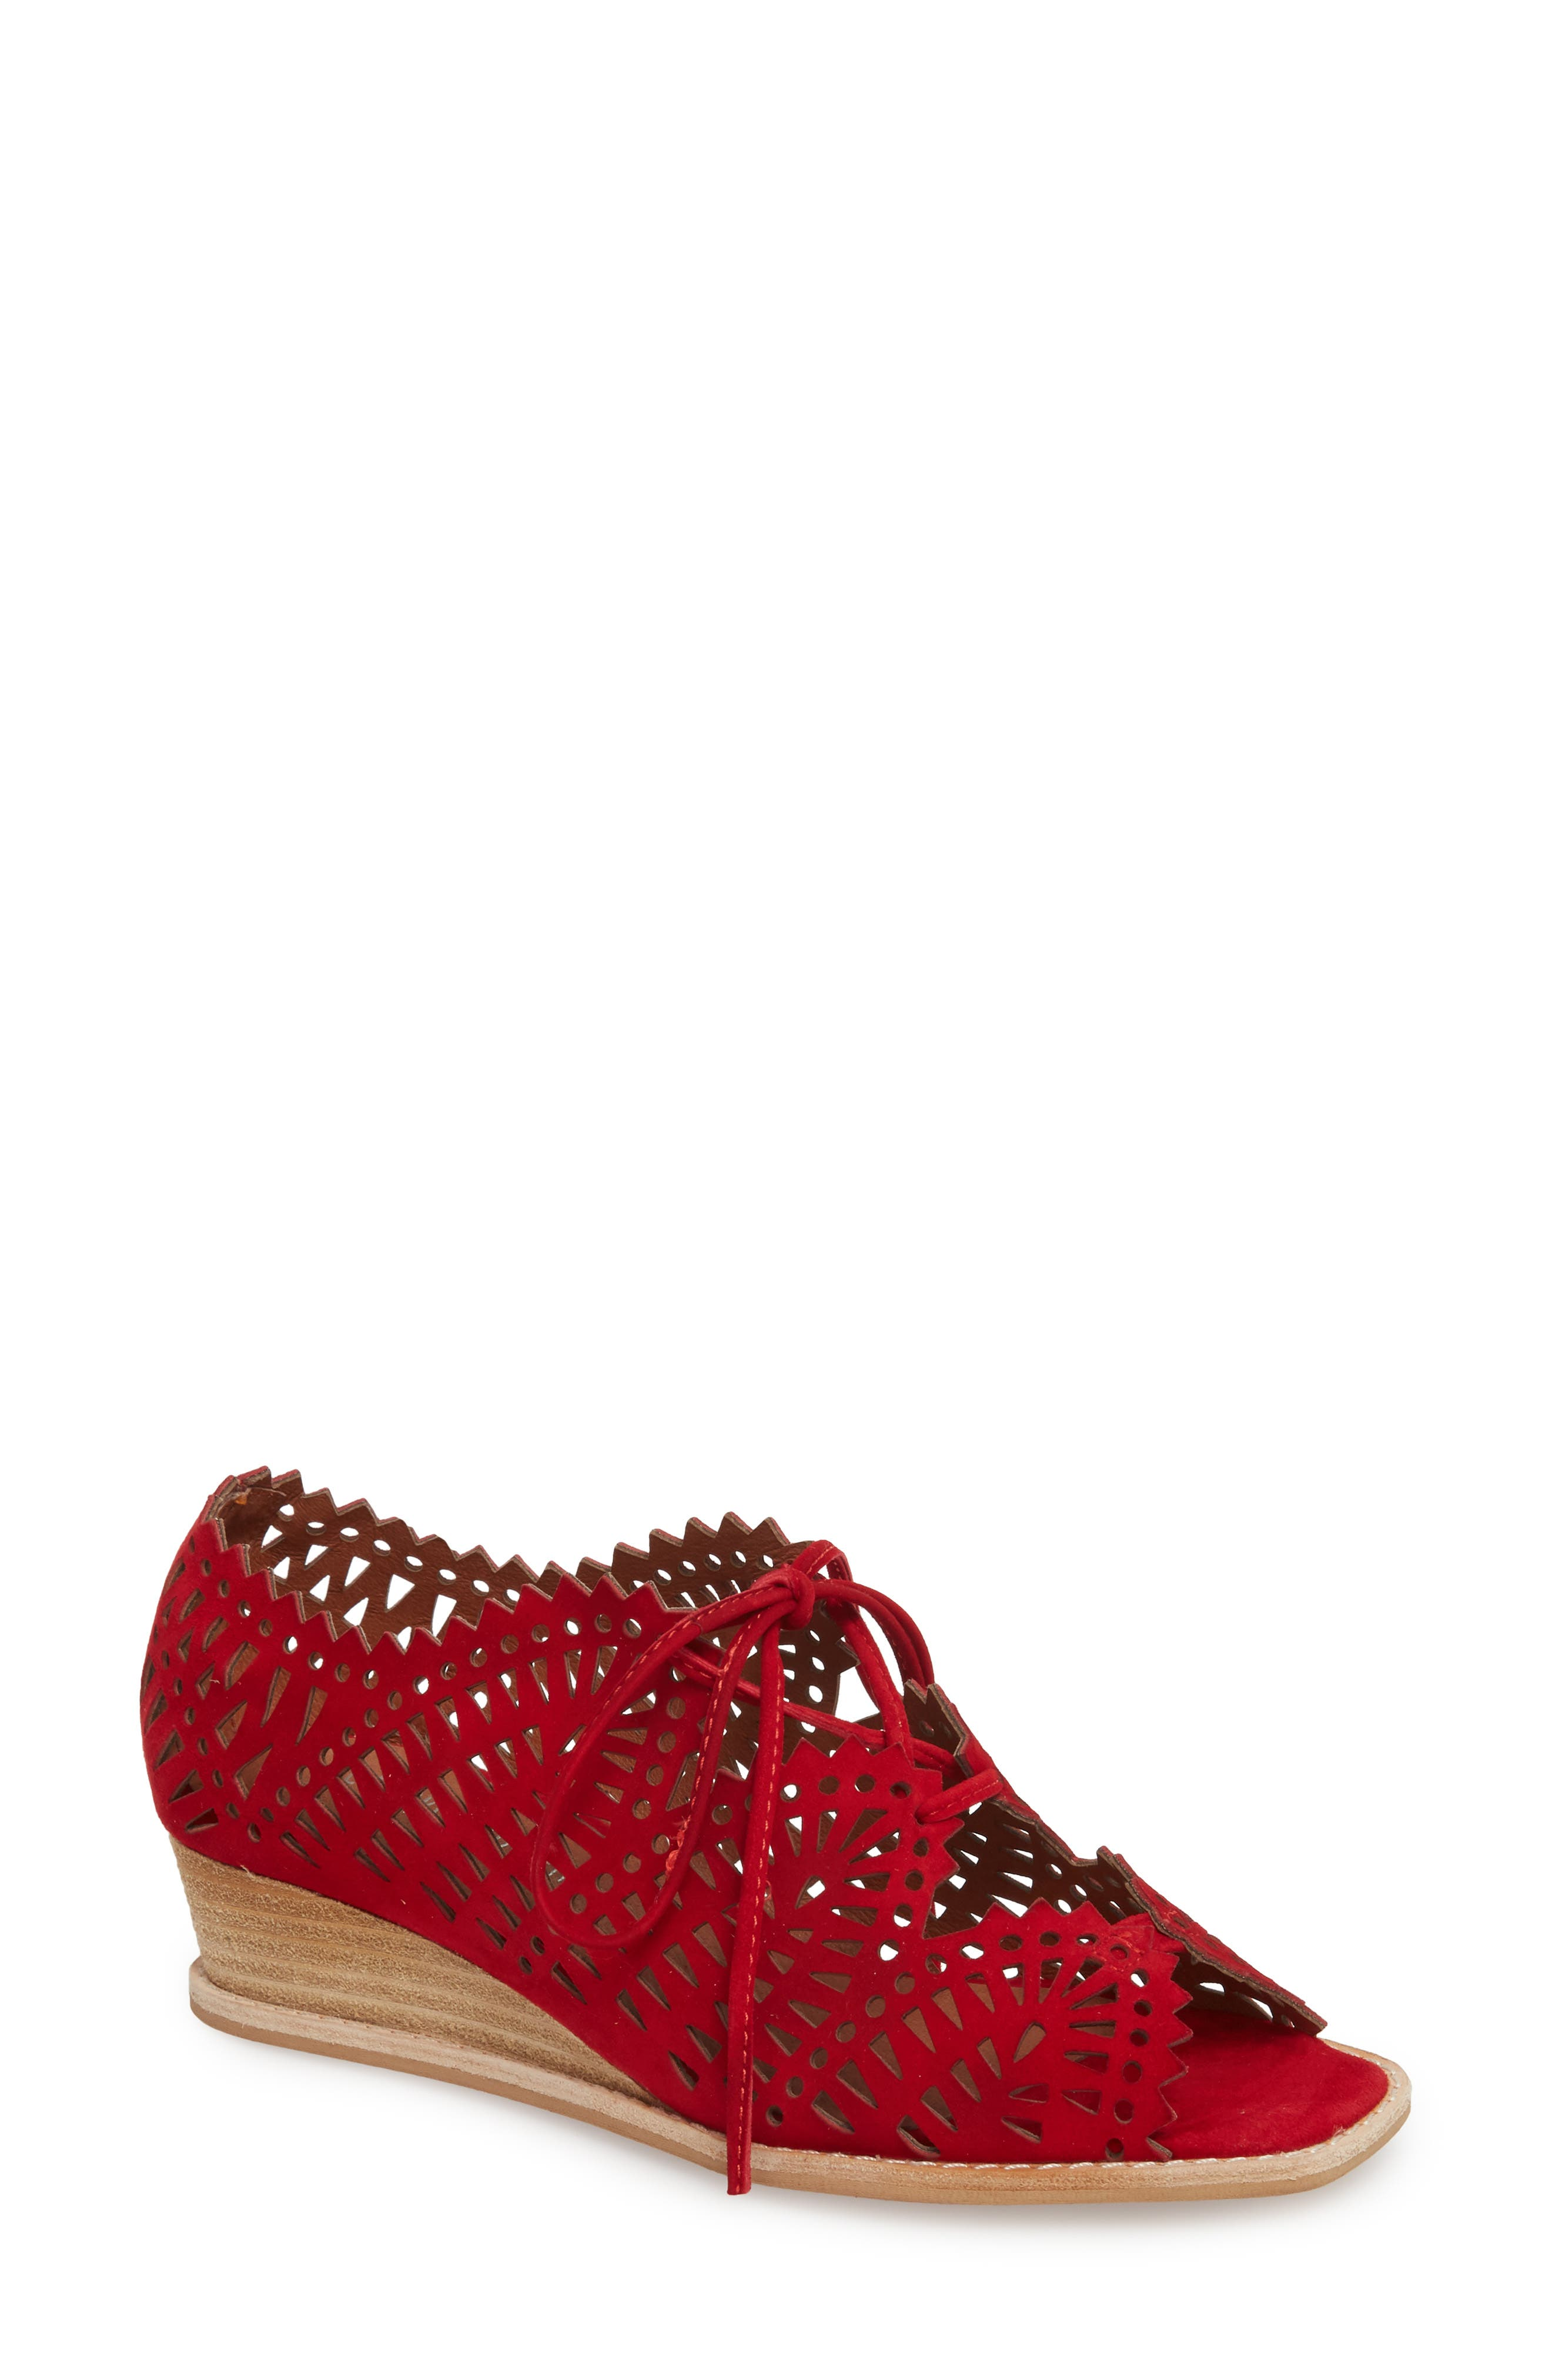 Jeffrey Campbell Espejo Lace-Up Wedge, Red